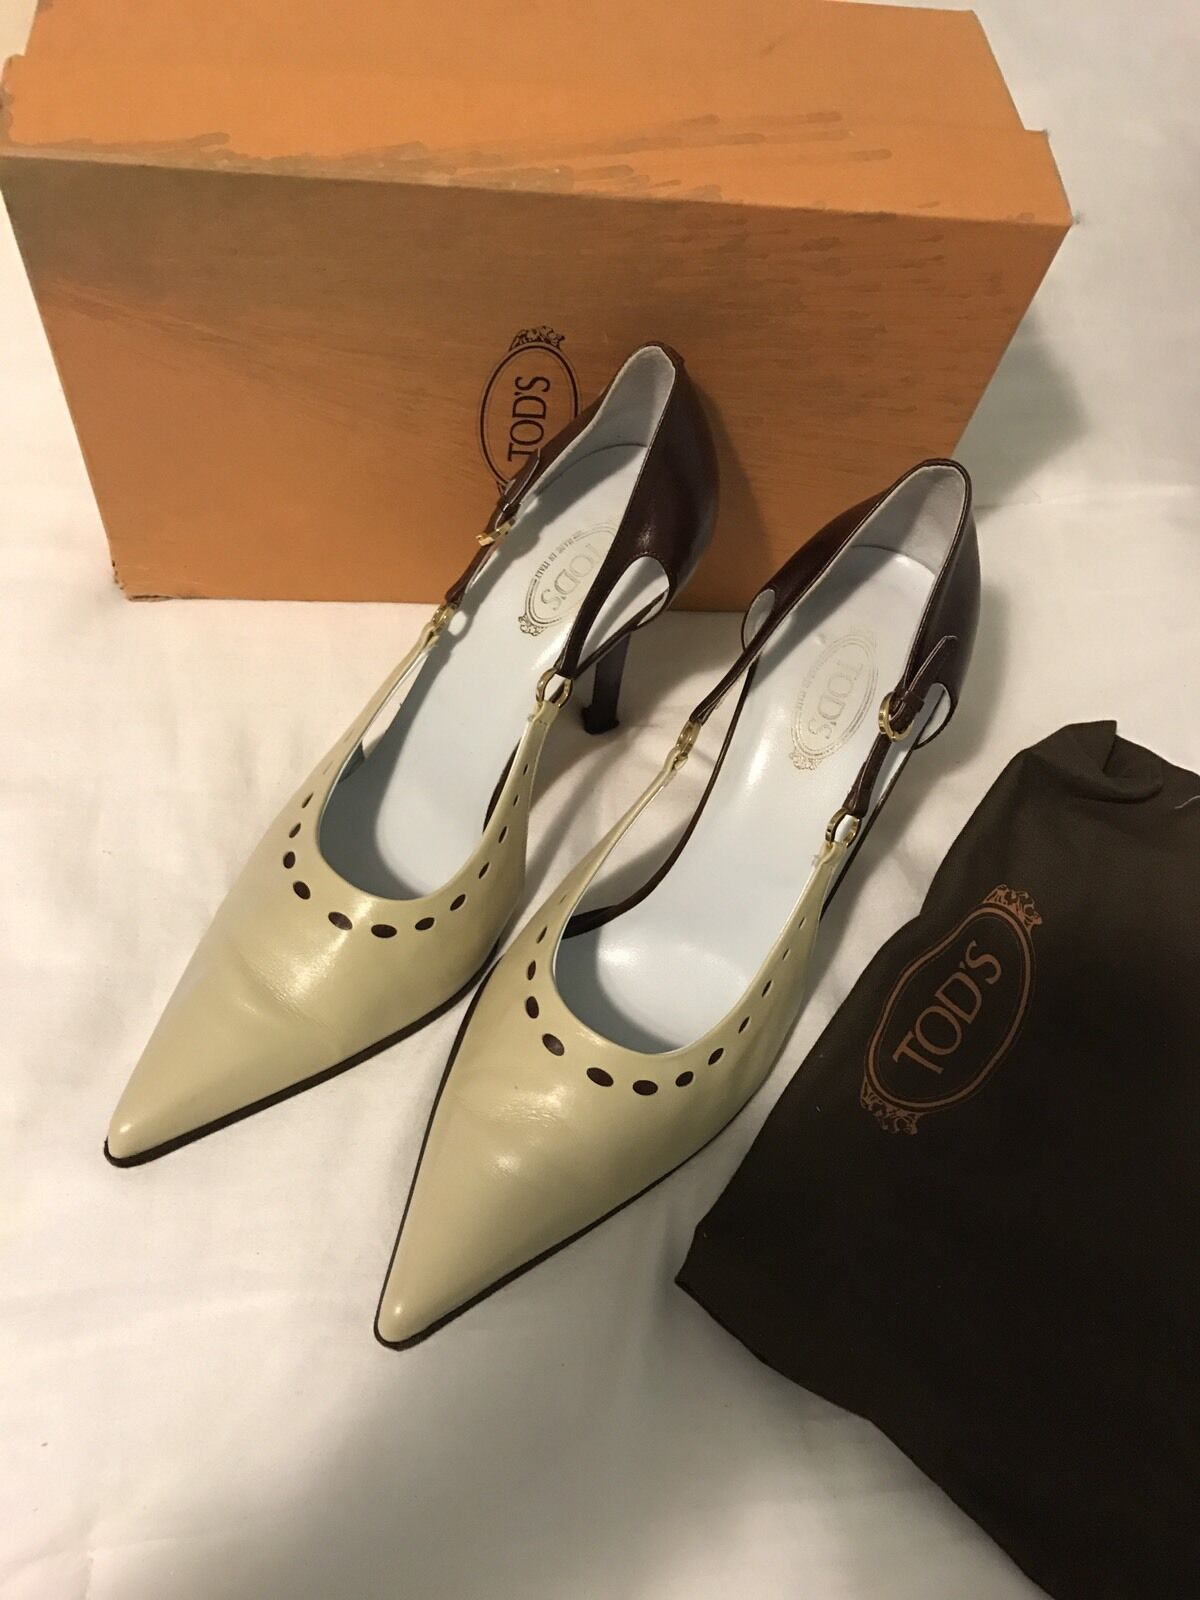 a9e644e6f63 Women s Tods Tods Tods Brown And Cream Heels Size 40 1bb833 - slip ...